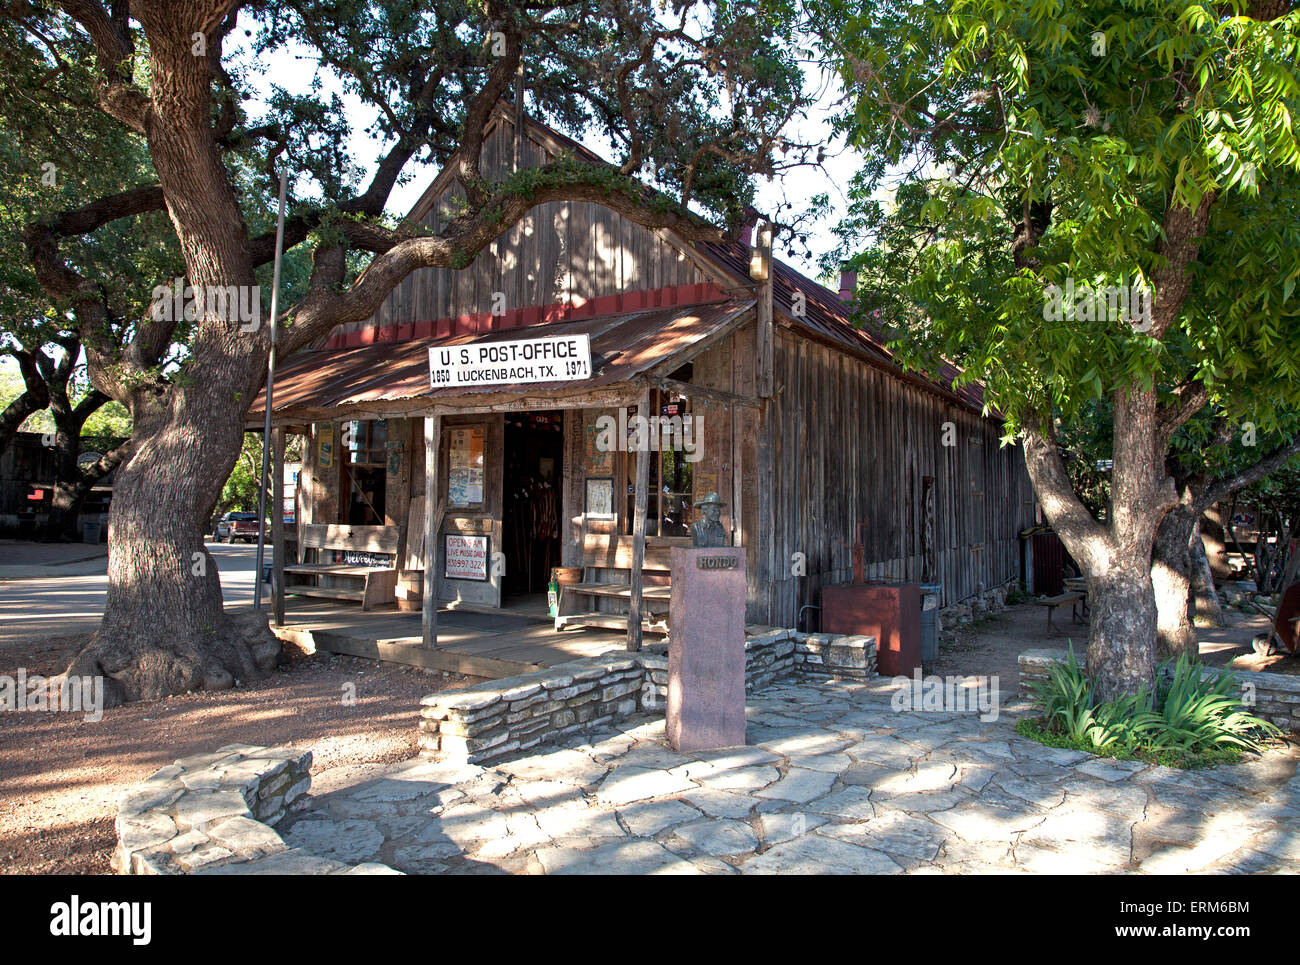 Built in 1850, this unpainted frontier-style building served as Luckenbach's postoffice until 1971. - Stock Image